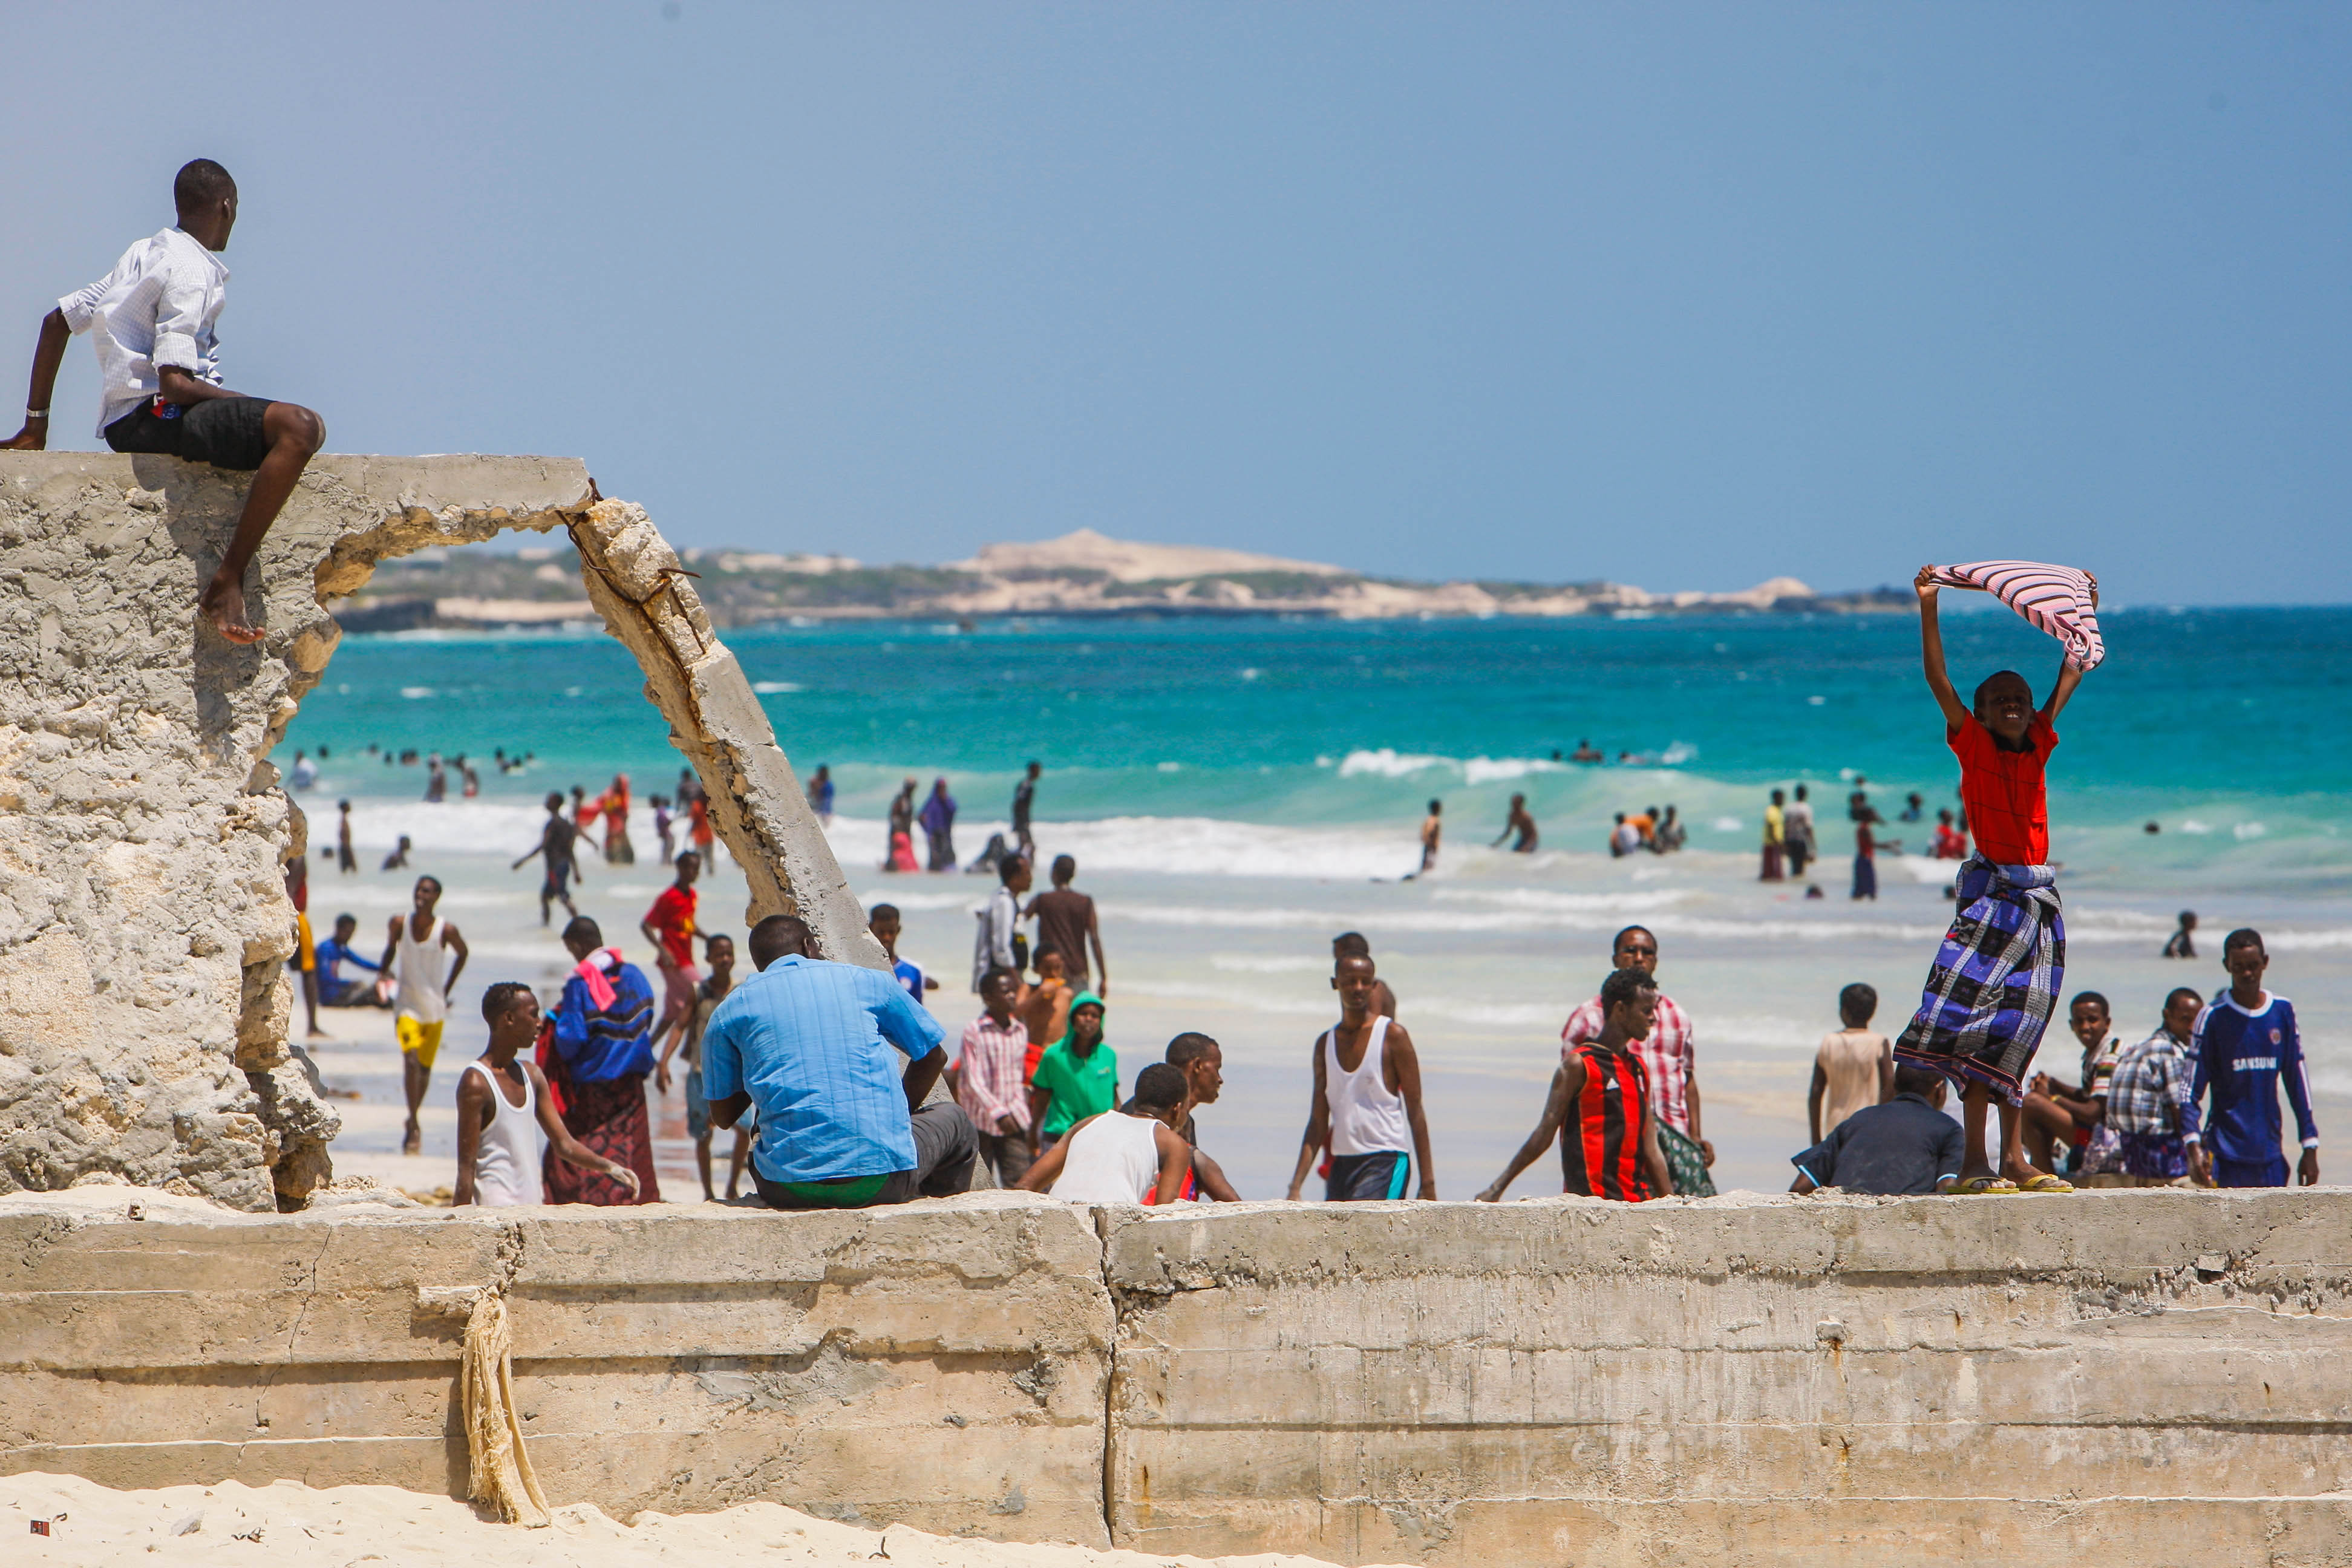 On foot patrol in Mogadishu with an AMISOM Formed Police Unit 18, AMISOM, Beach, Civilians, Landscape, HQ Photo